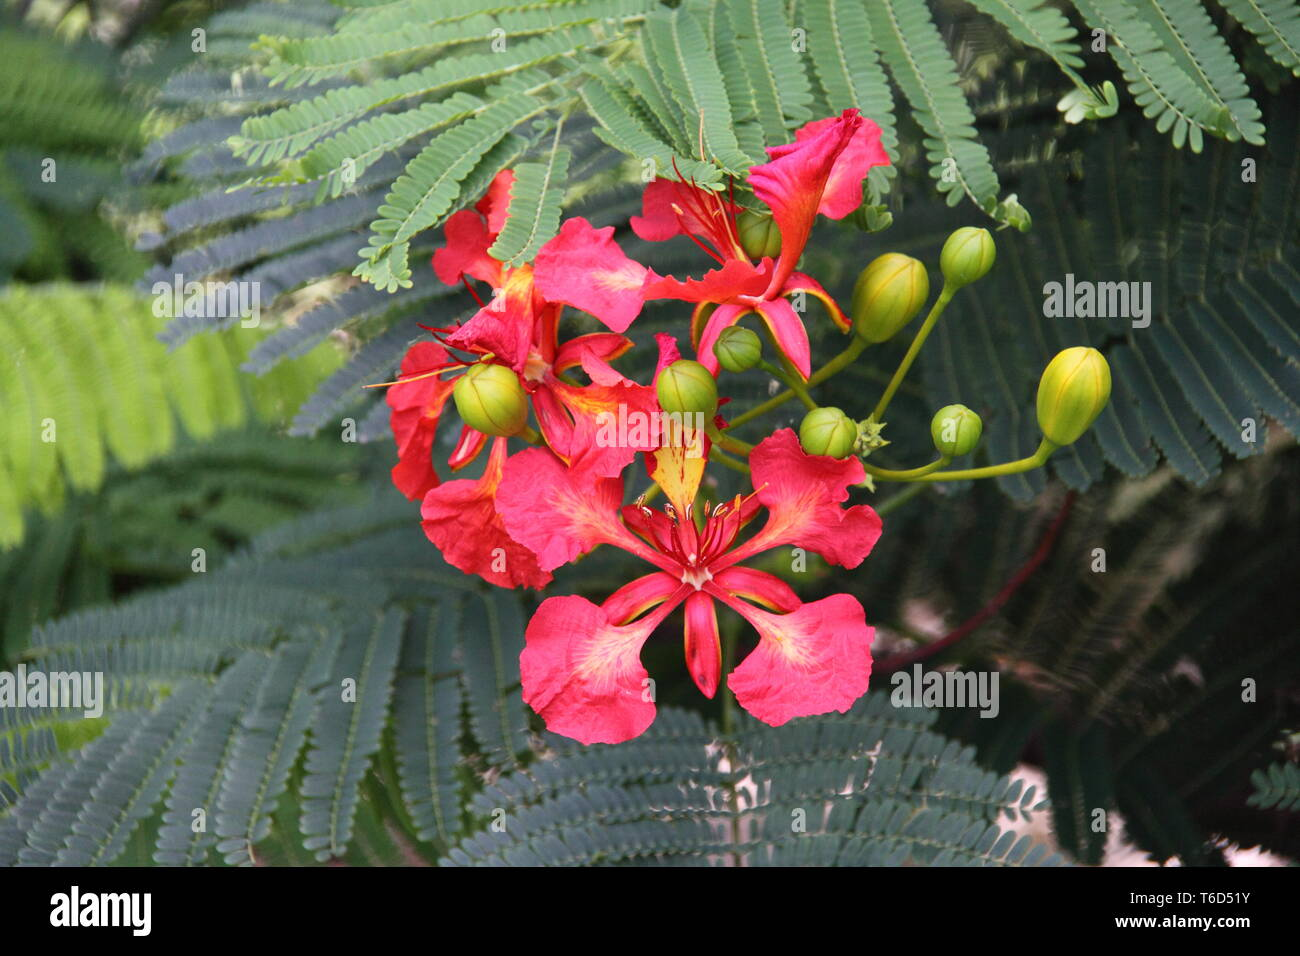 Open Flower of the Royal Poinciana Tree (Delonix Regia) - Stock Image